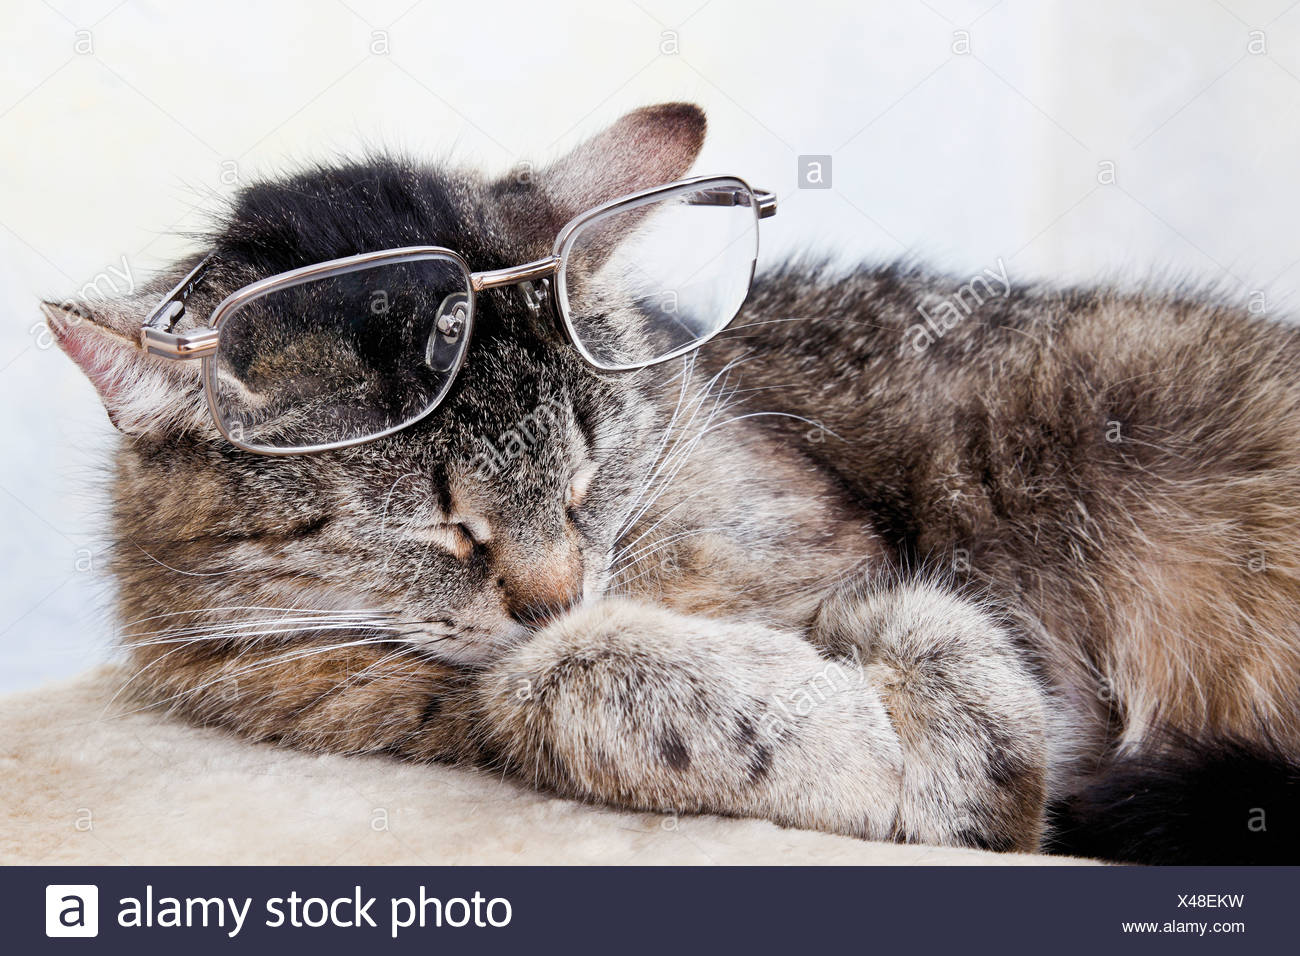 Domestic cat wearing spectacles, close-up - Stock Image